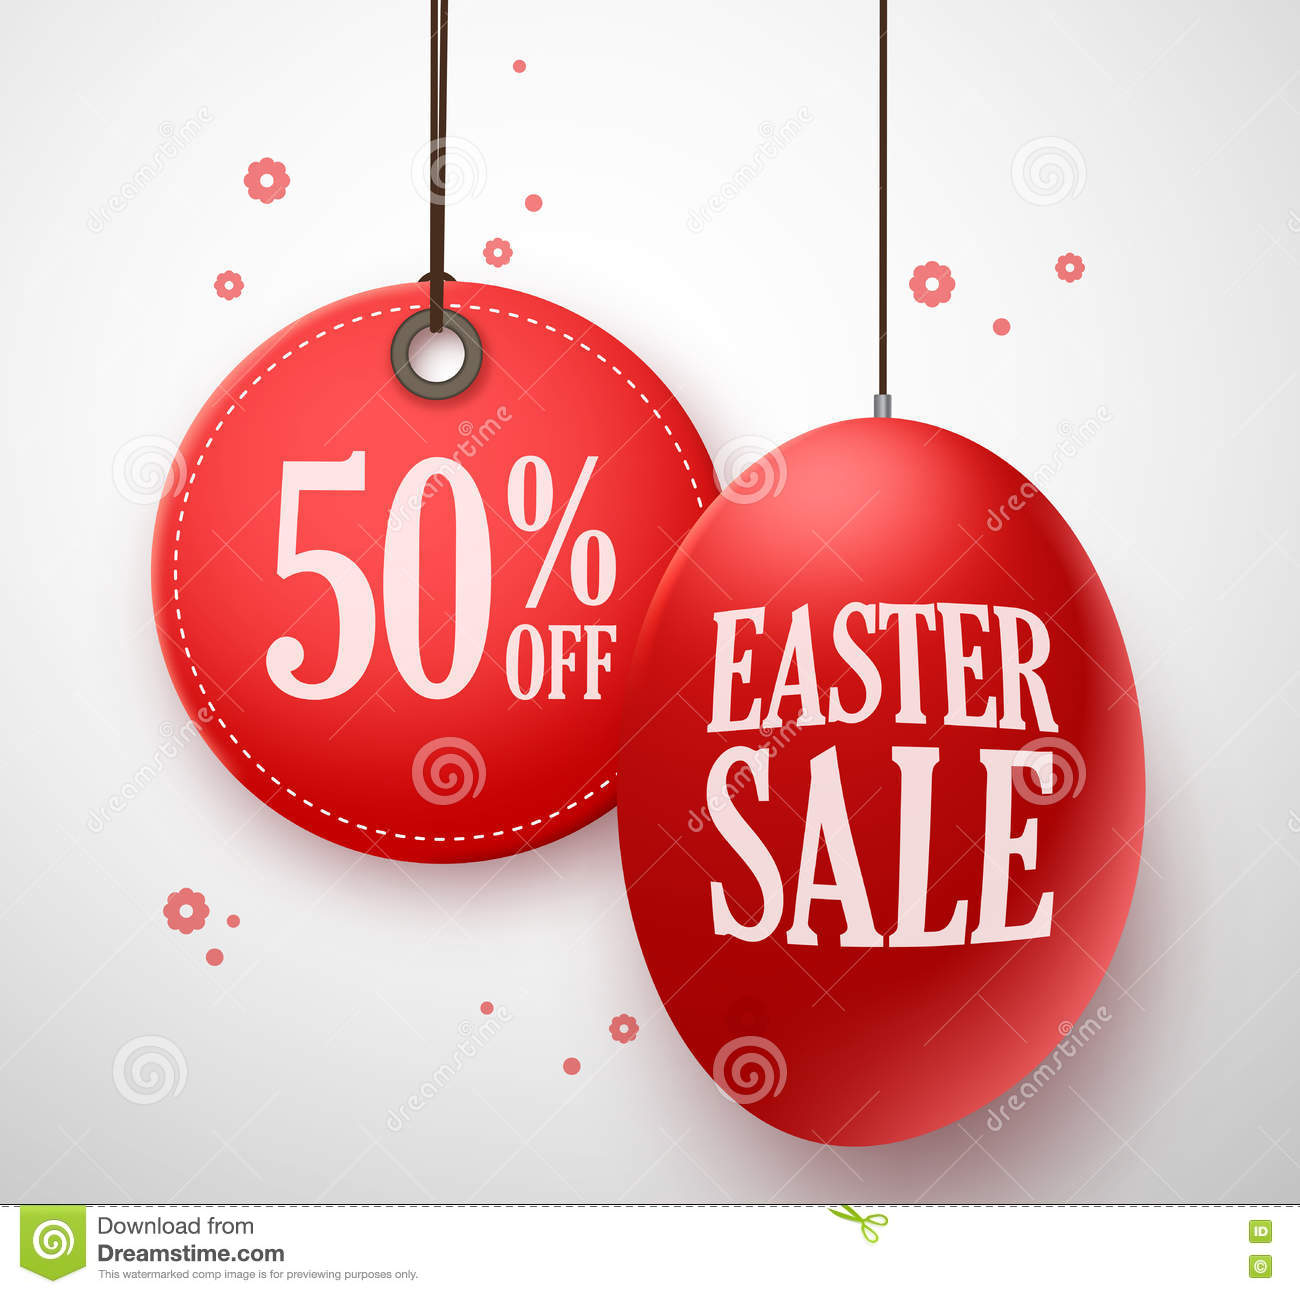 Easter Sale: Easter Sale In Red Egg With 50% Off Price Tag Hanging In